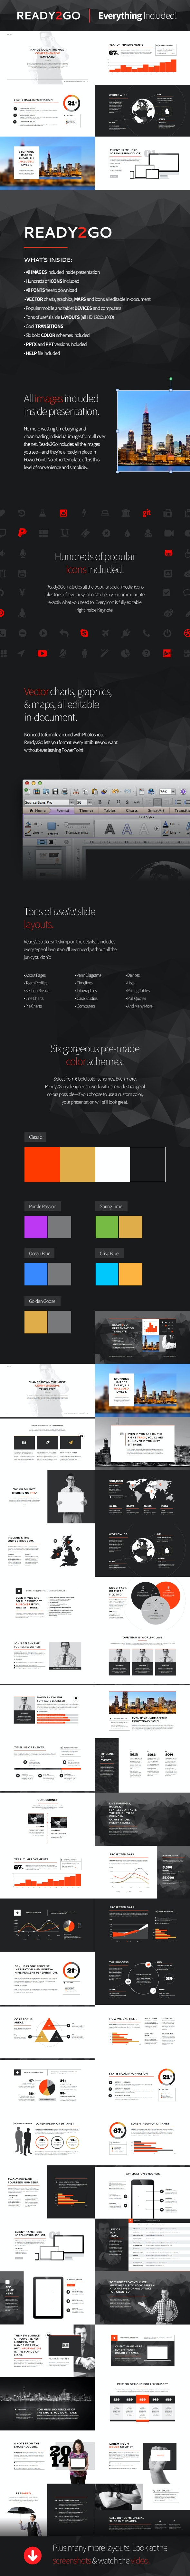 Ready2Go Professional PowerPoint Template - Business PowerPoint Templates